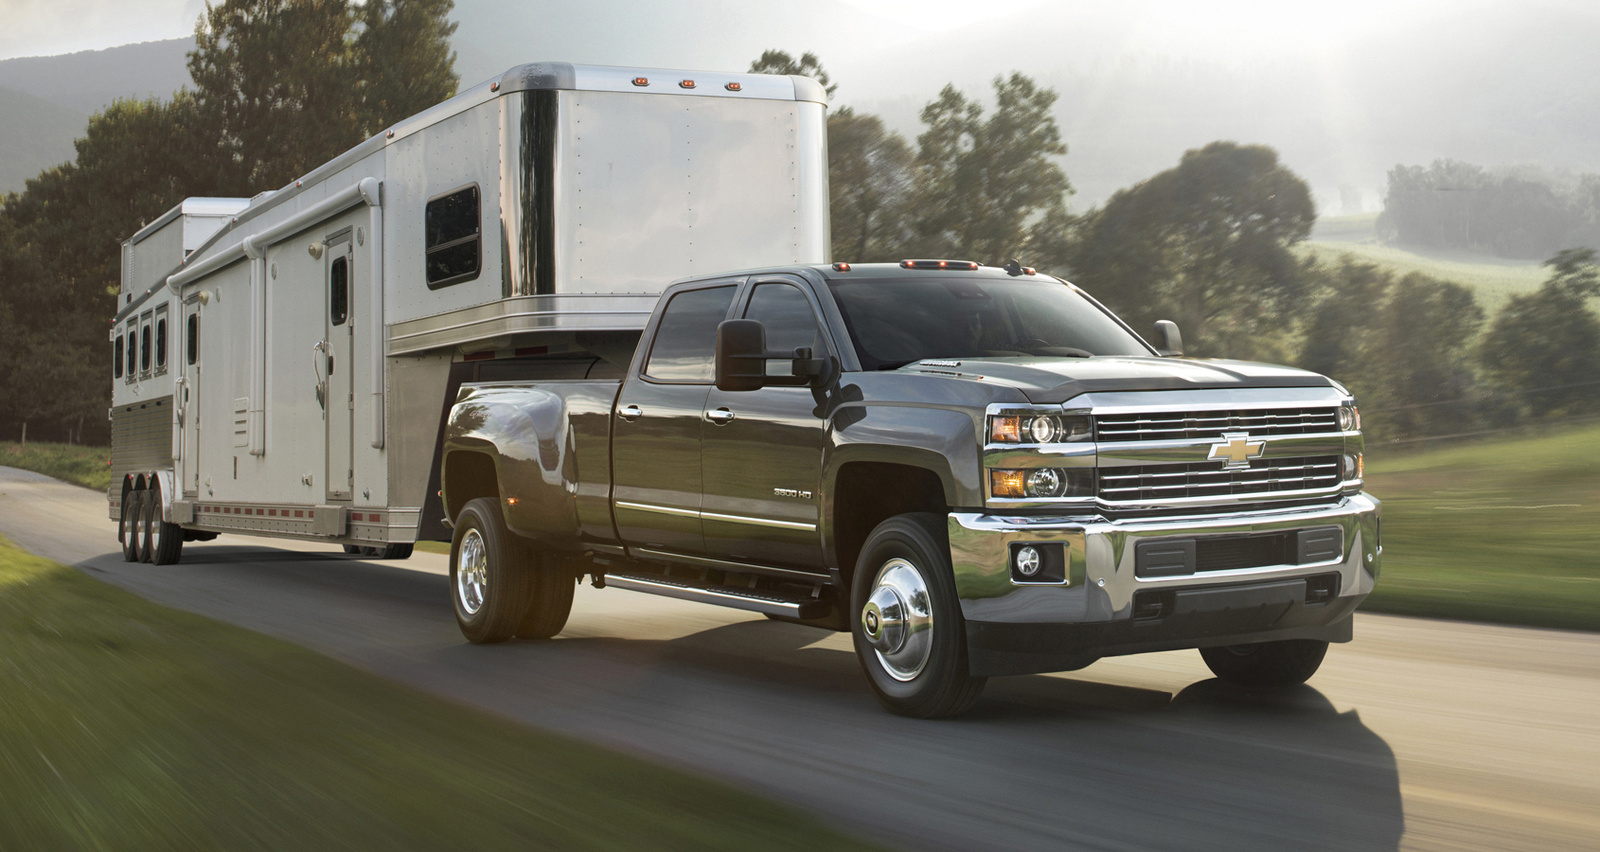 2016 Chevrolet Silverado 3500HD - Overview - CarGurus